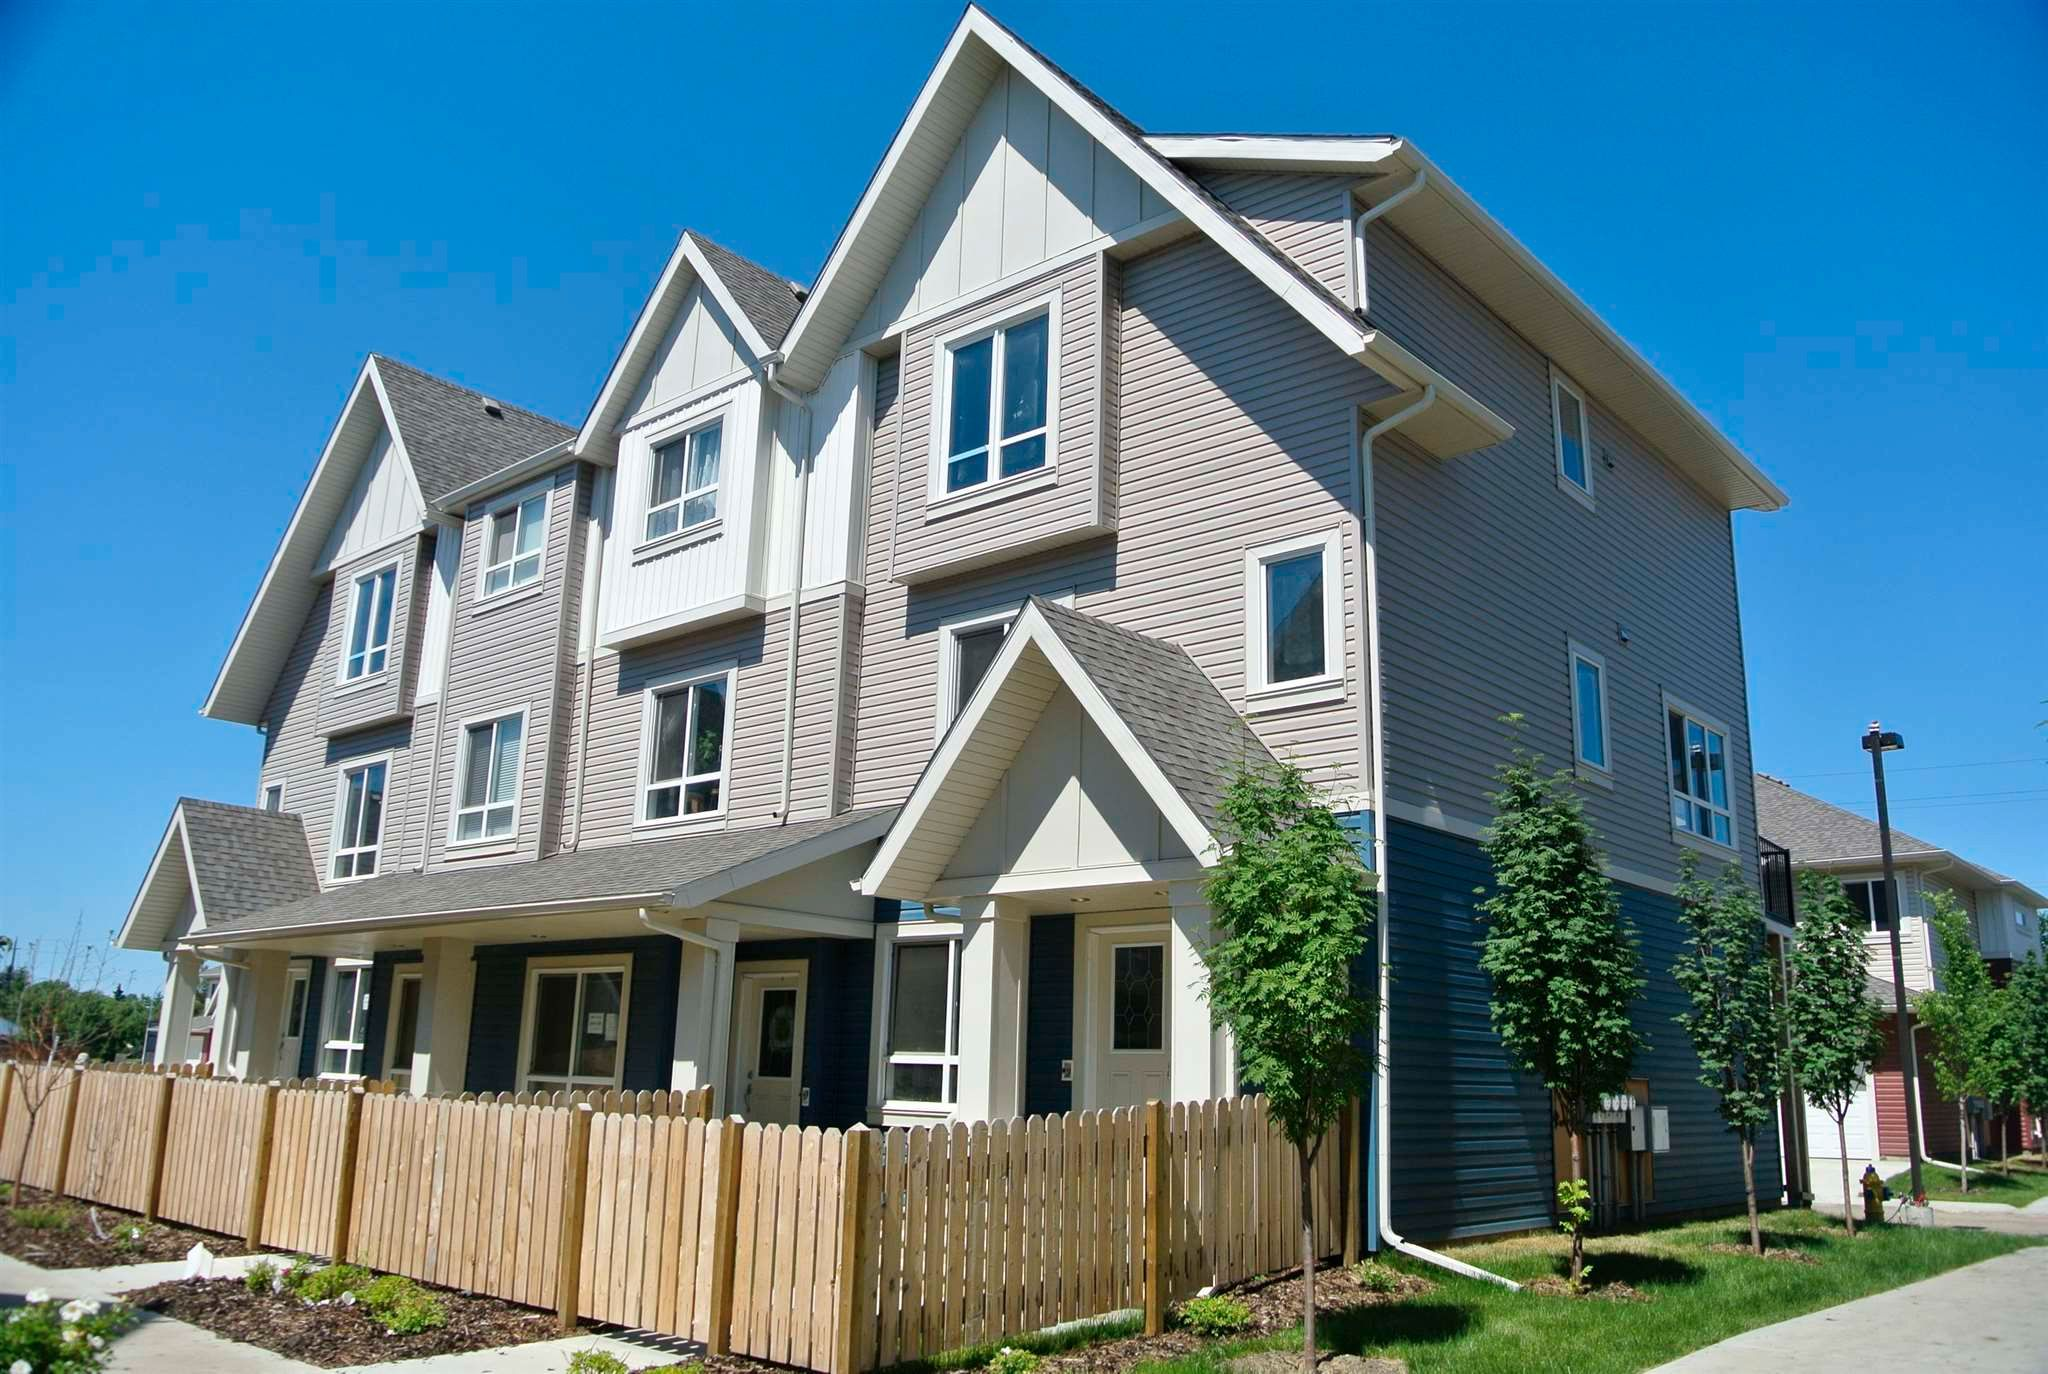 Main Photo: 48 13003 132 Avenue NW in Edmonton: Zone 01 Townhouse for sale : MLS®# E4250014